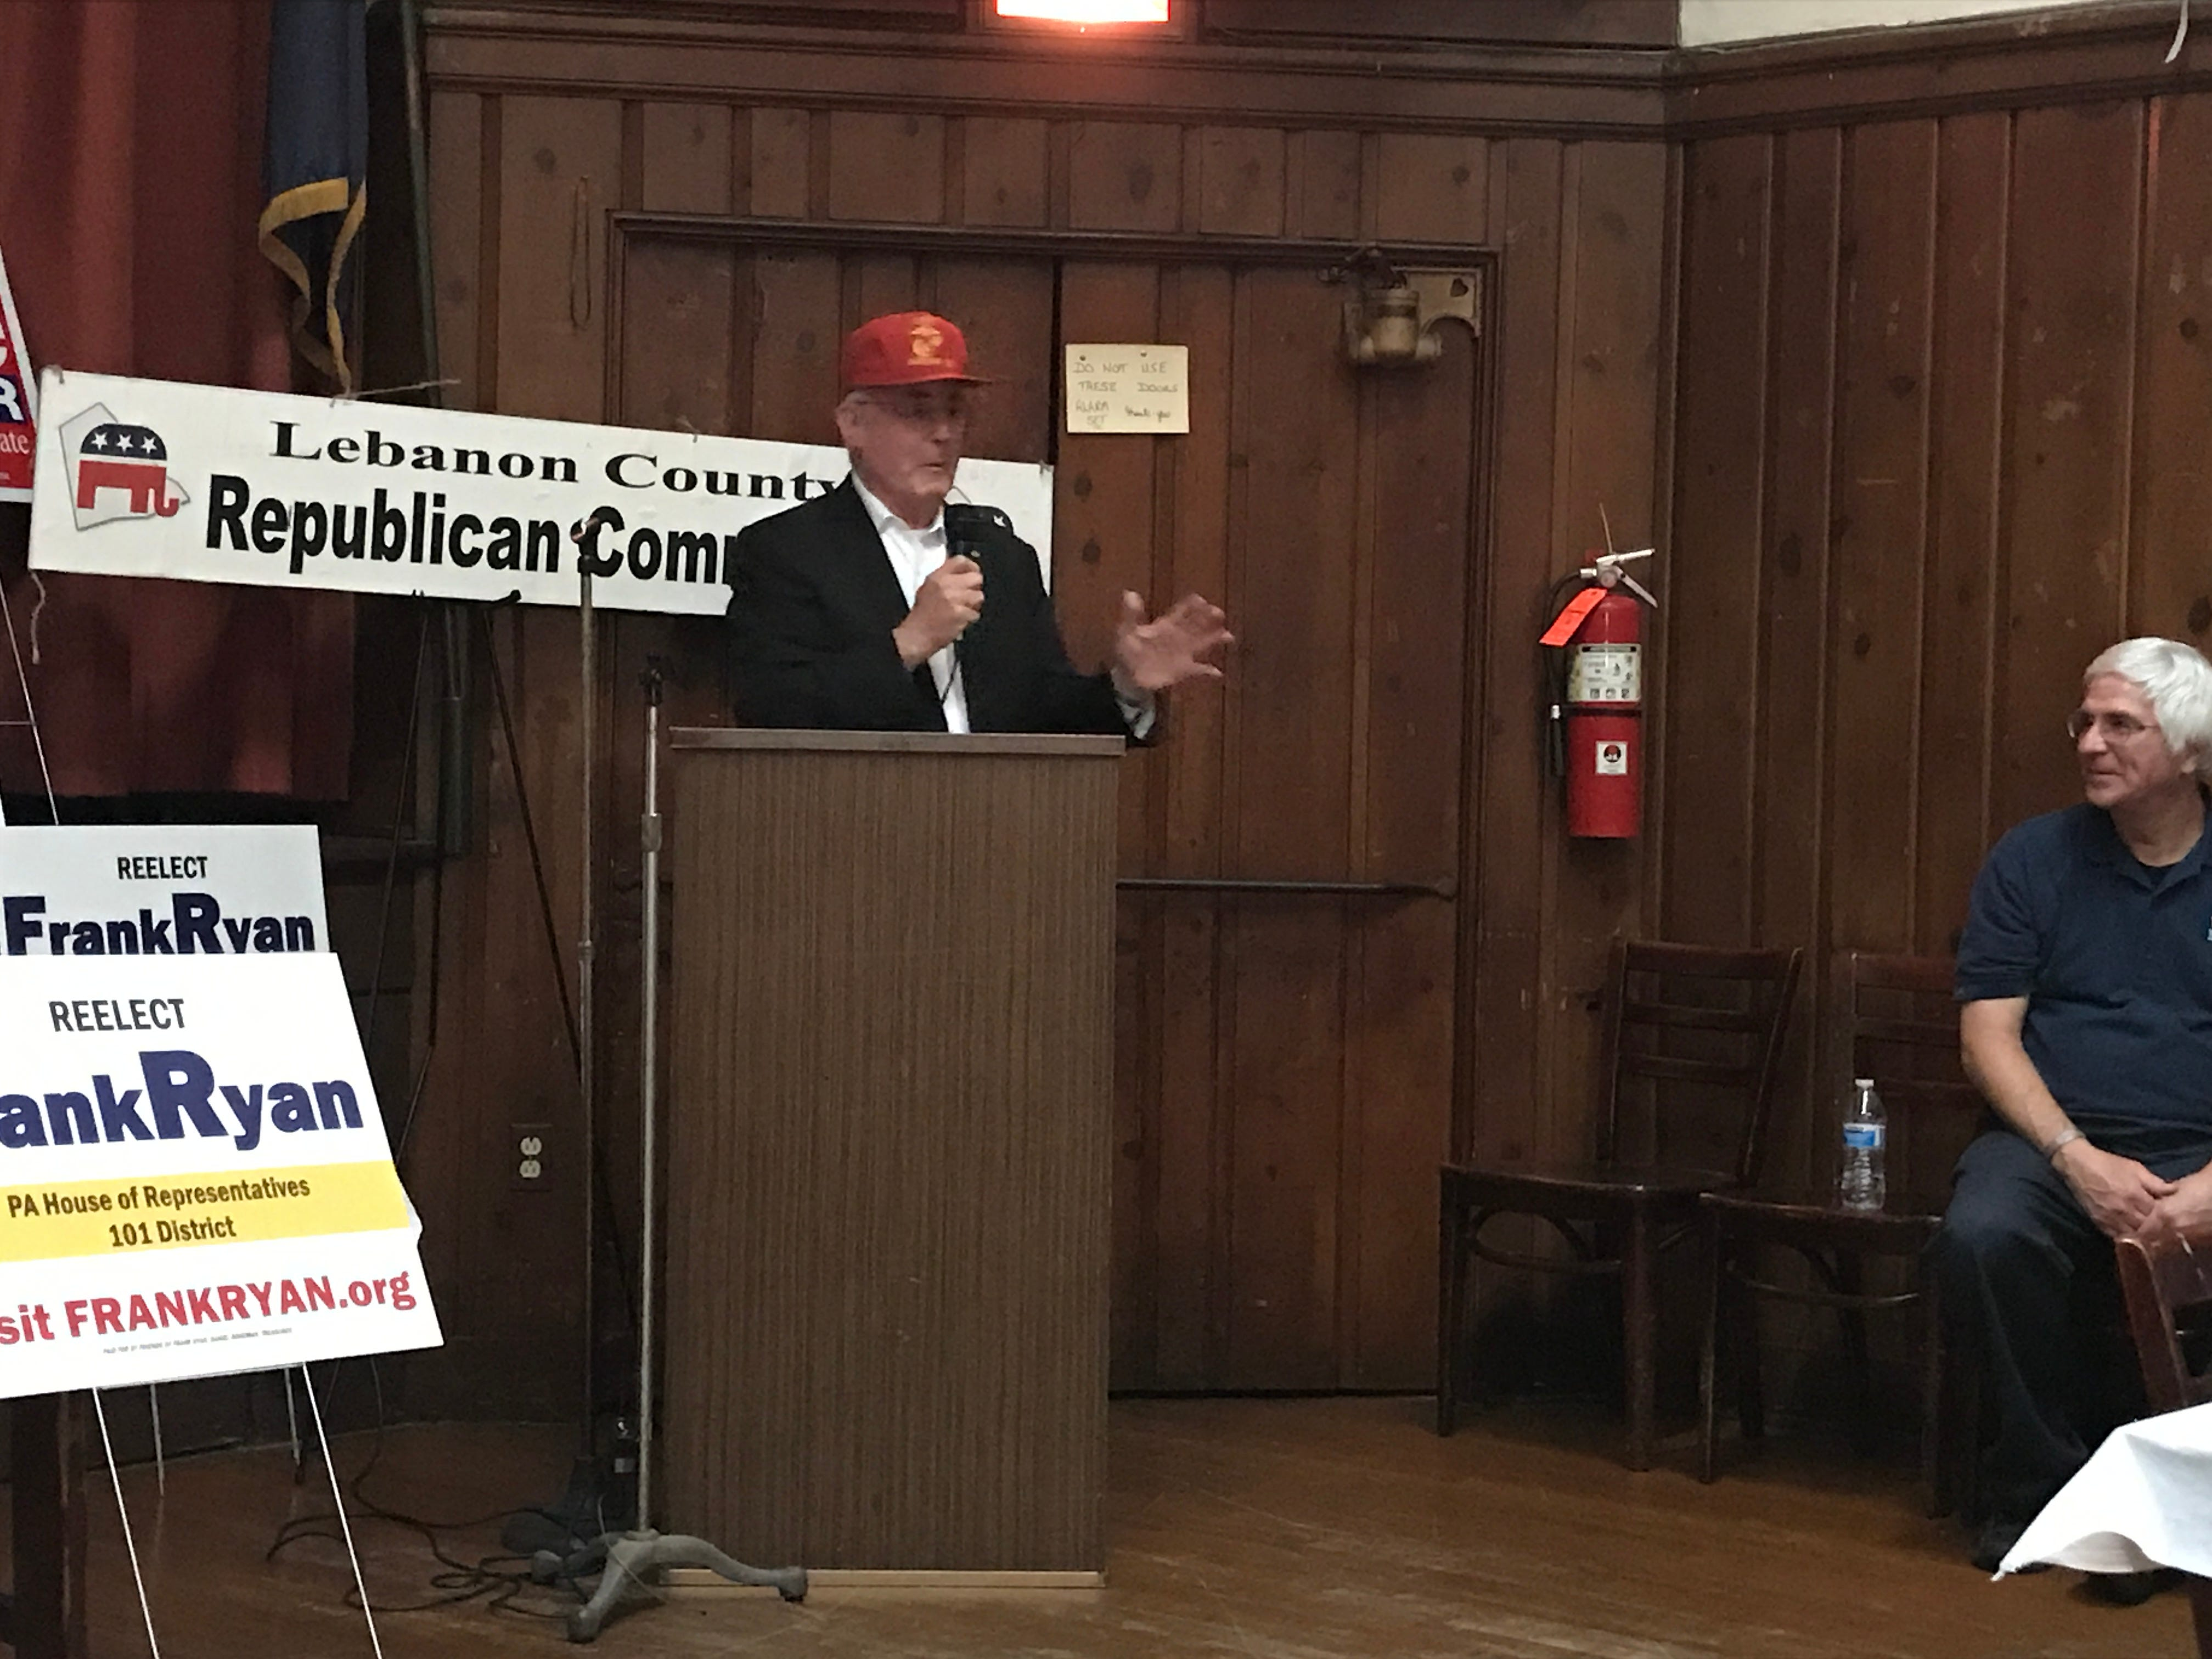 State Rep. Frank Ryan speaks at the Lincoln Republican Club following his reelection Tuesday night.